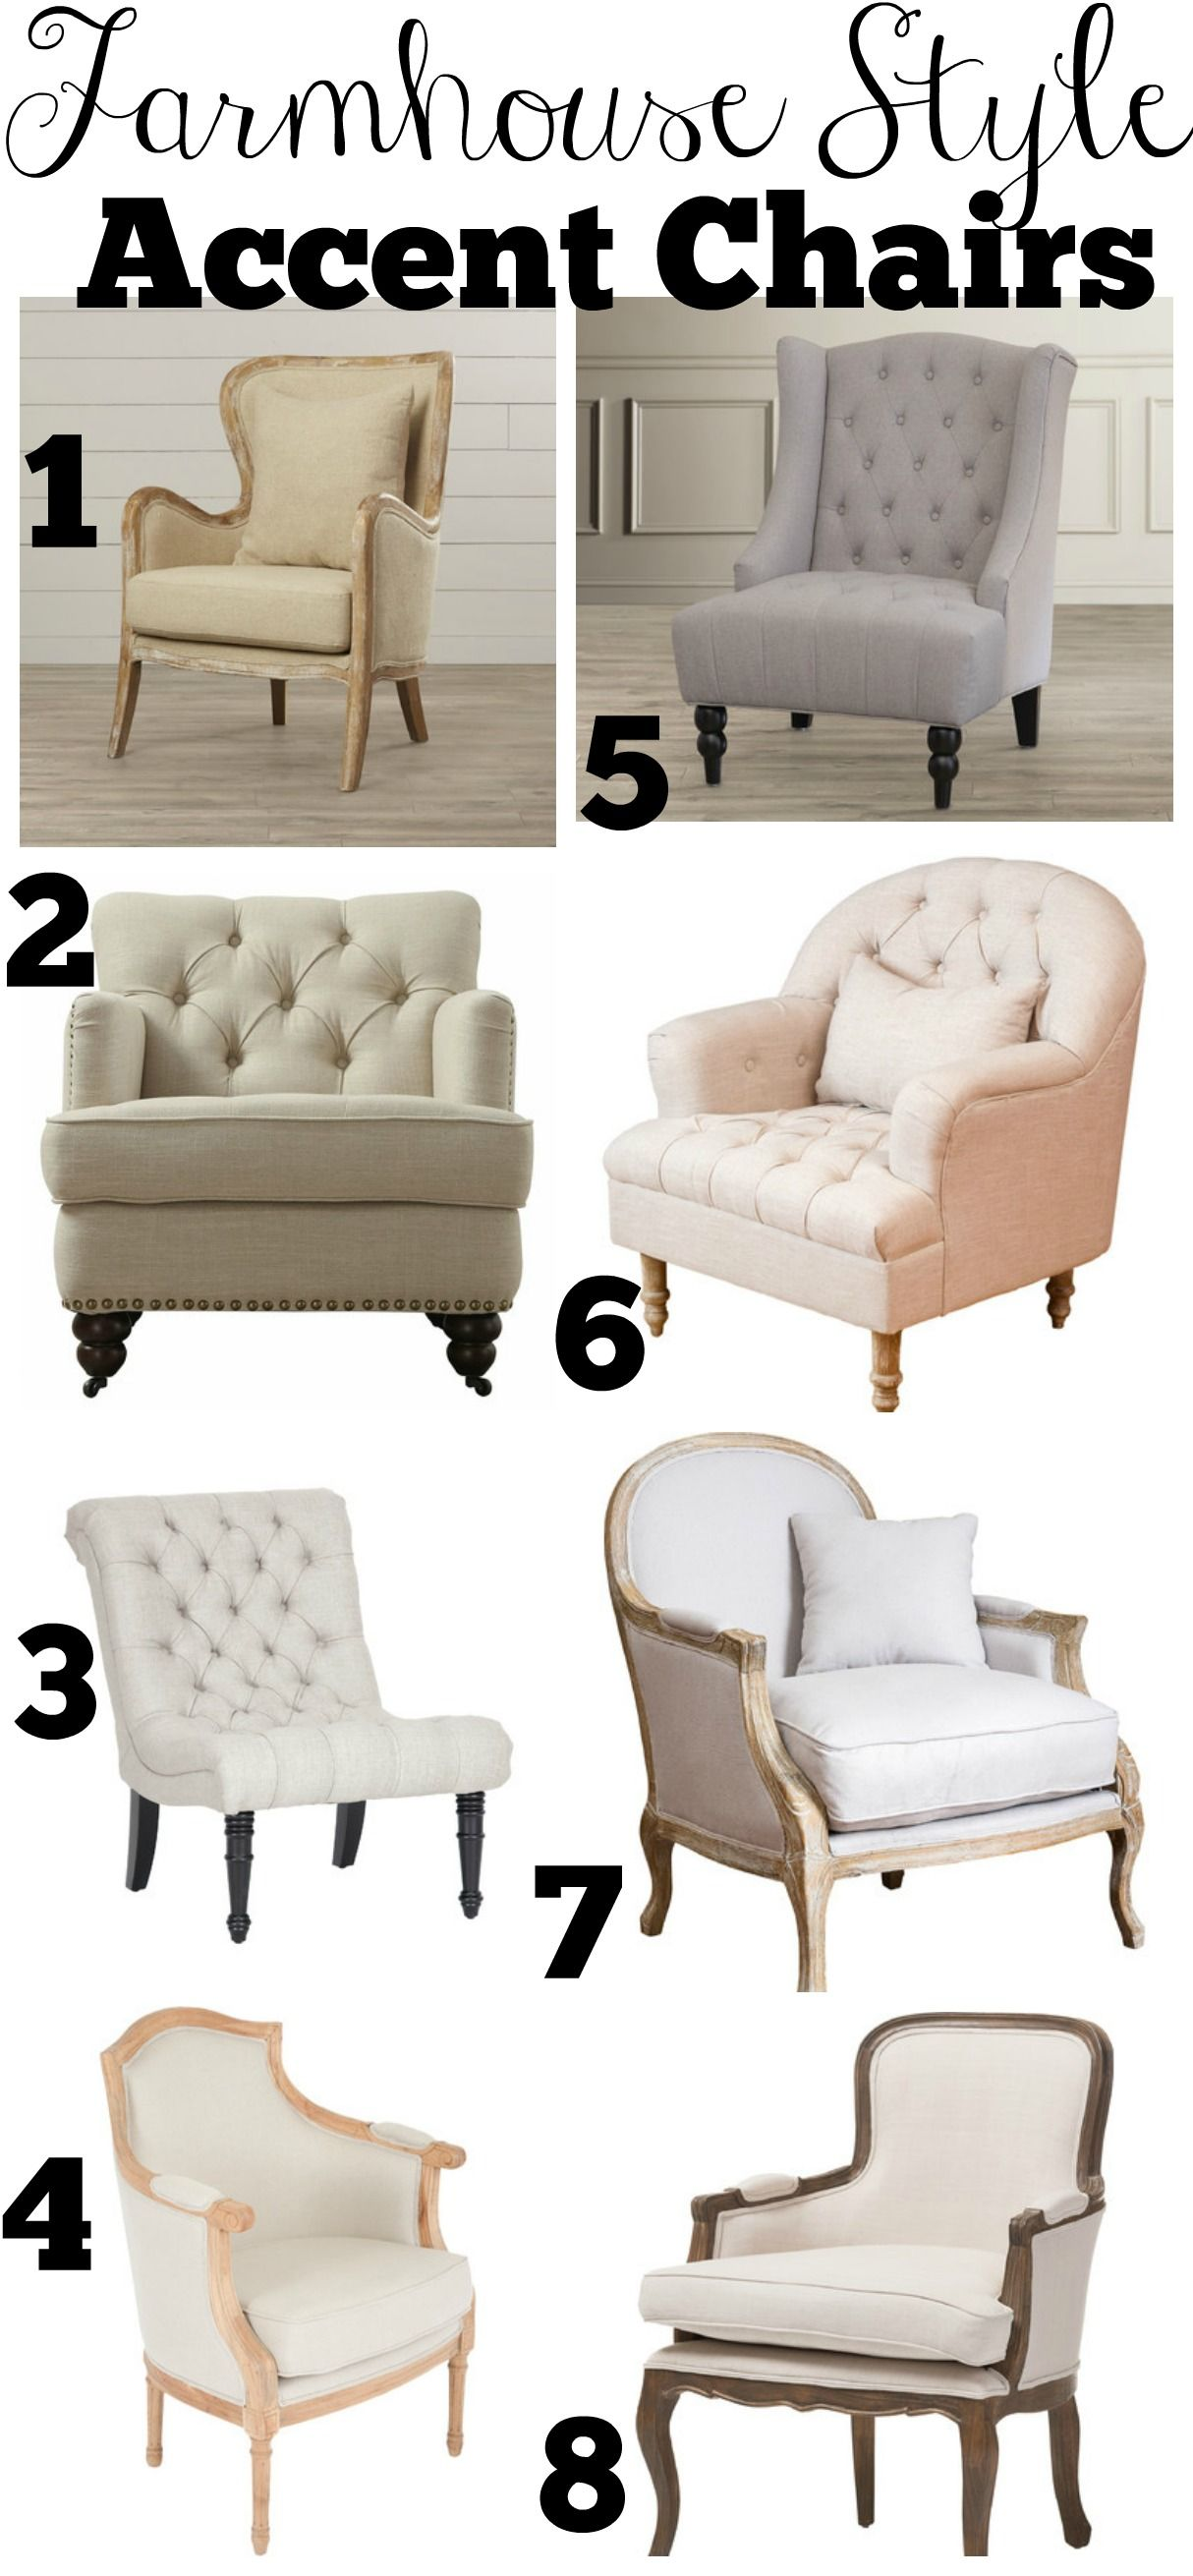 Farmhouse Style Accent Chairs  Farmhouse style chairs, Farm house